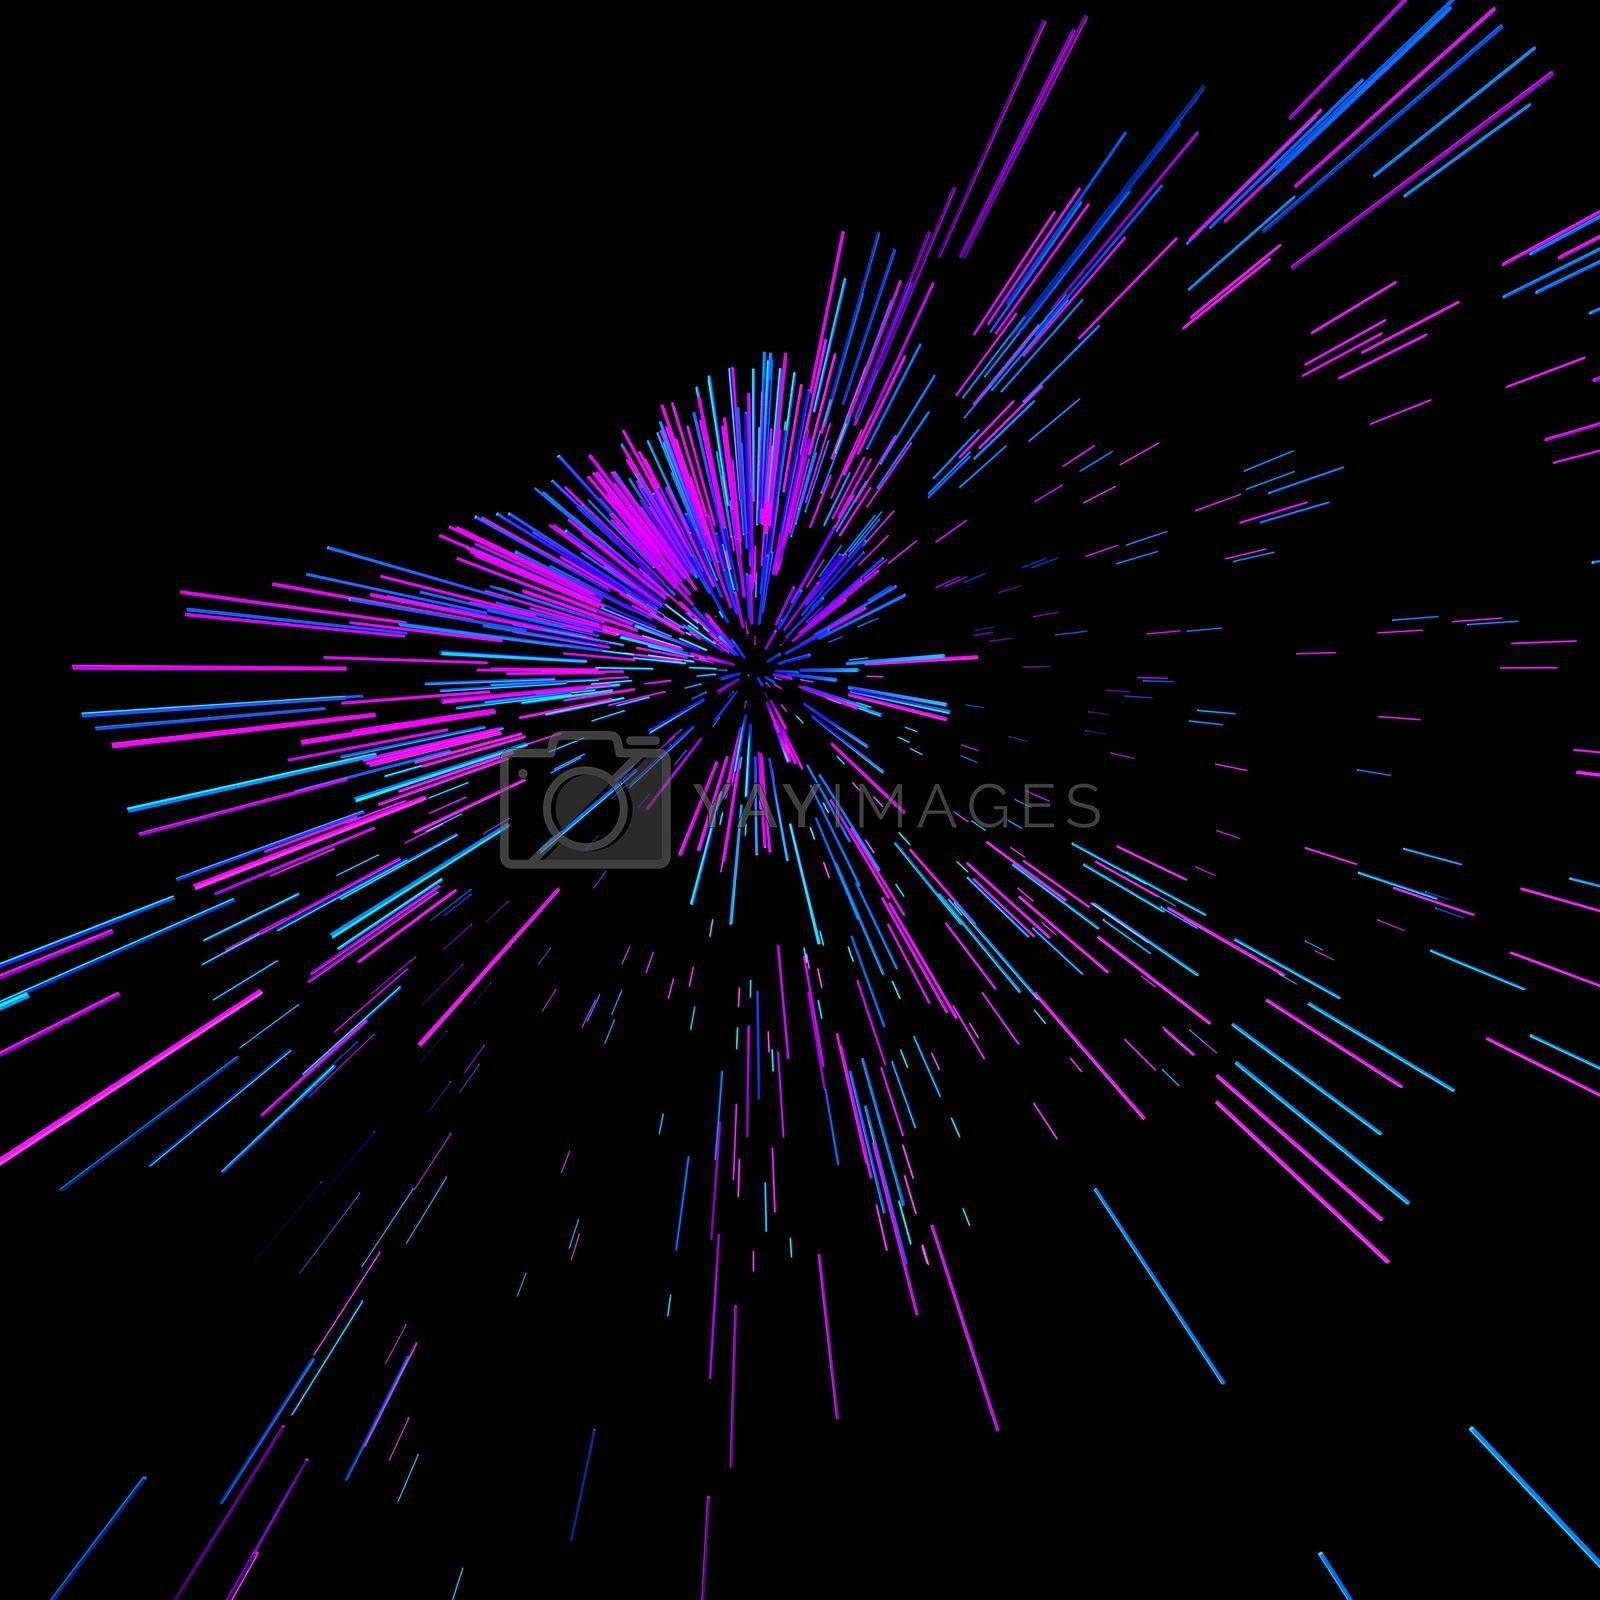 Abstract big data background wallpaper design. Motion pattern texture with shine colorful lines and cubes. Modern light shiny backdrop illustration. 3D render by Shanvood